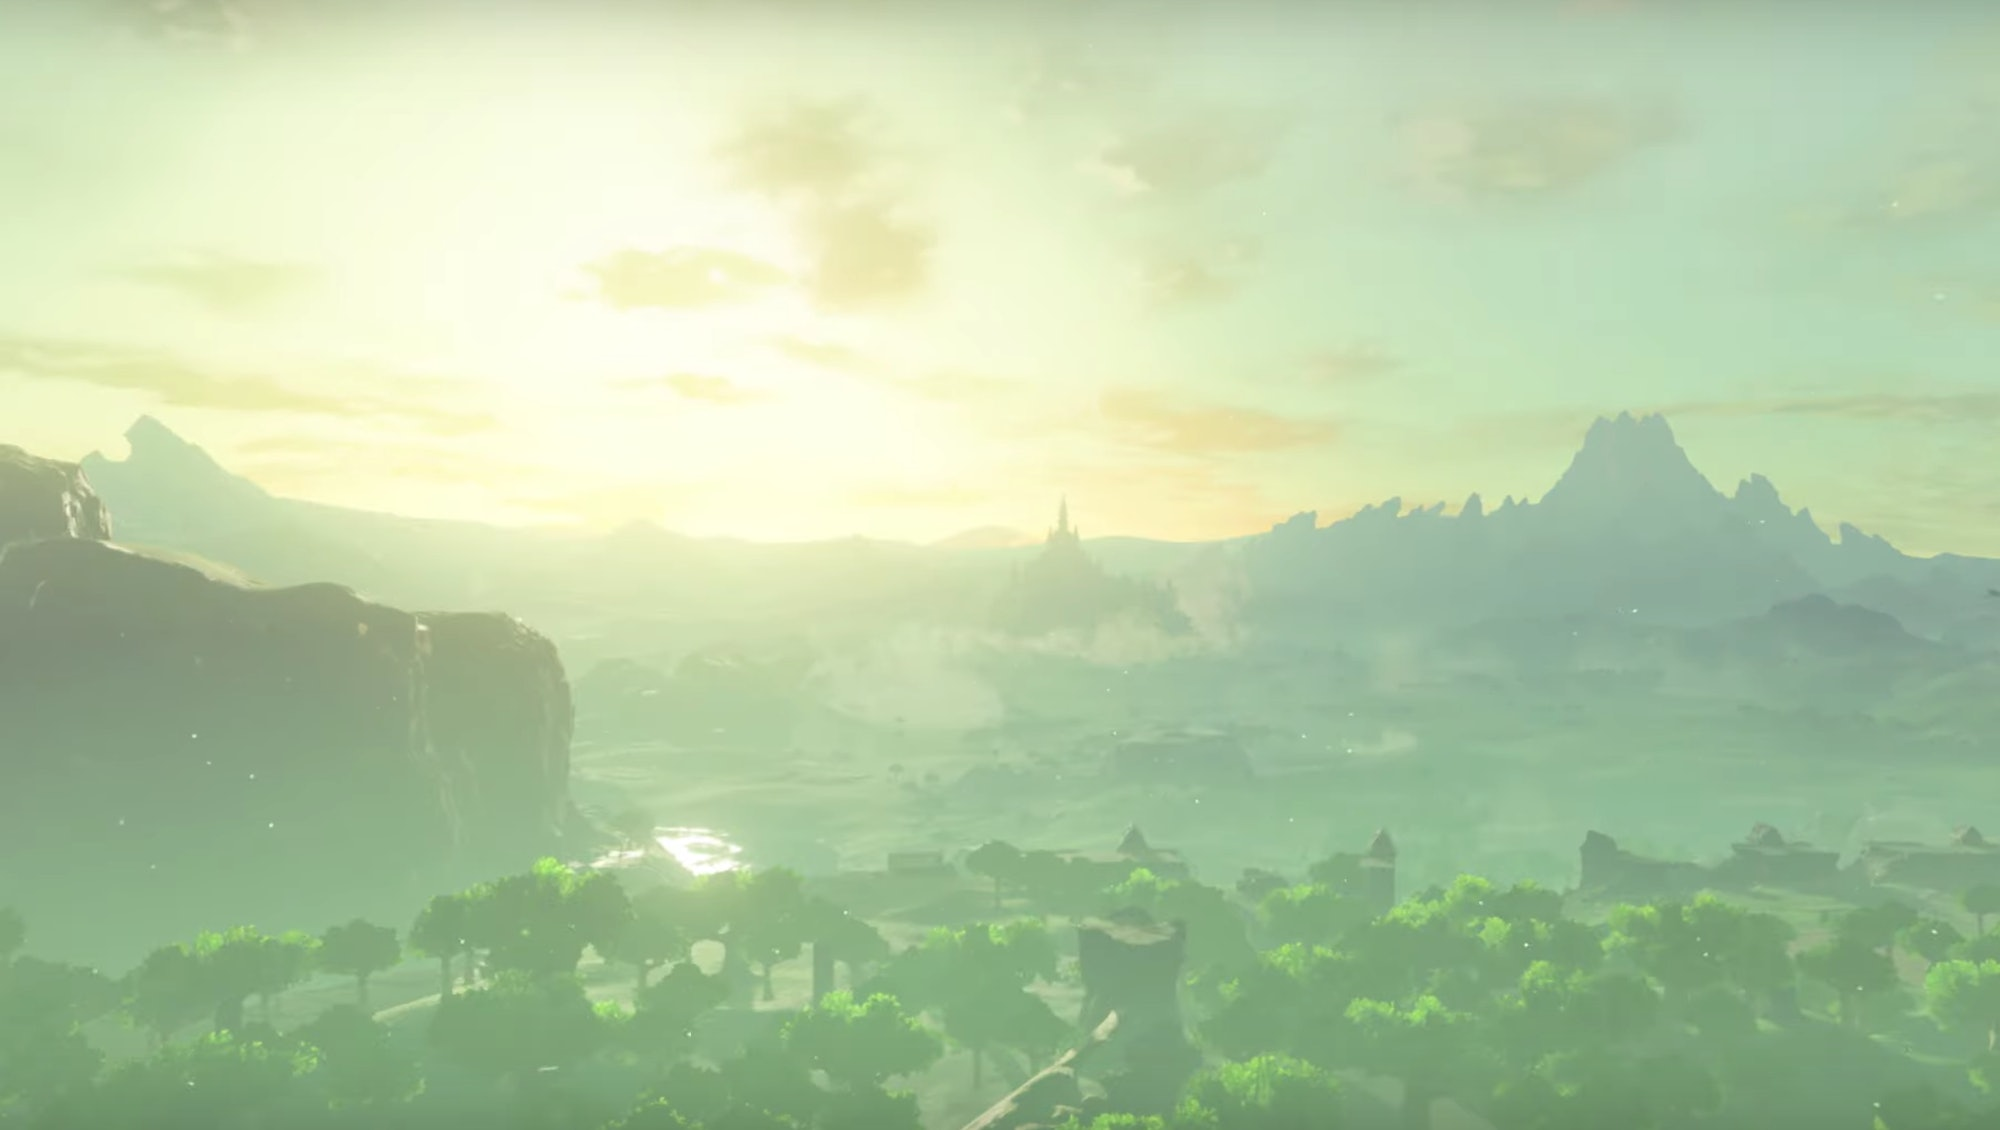 Still photo of Hyrule from Breath of the Wild sequel trailer